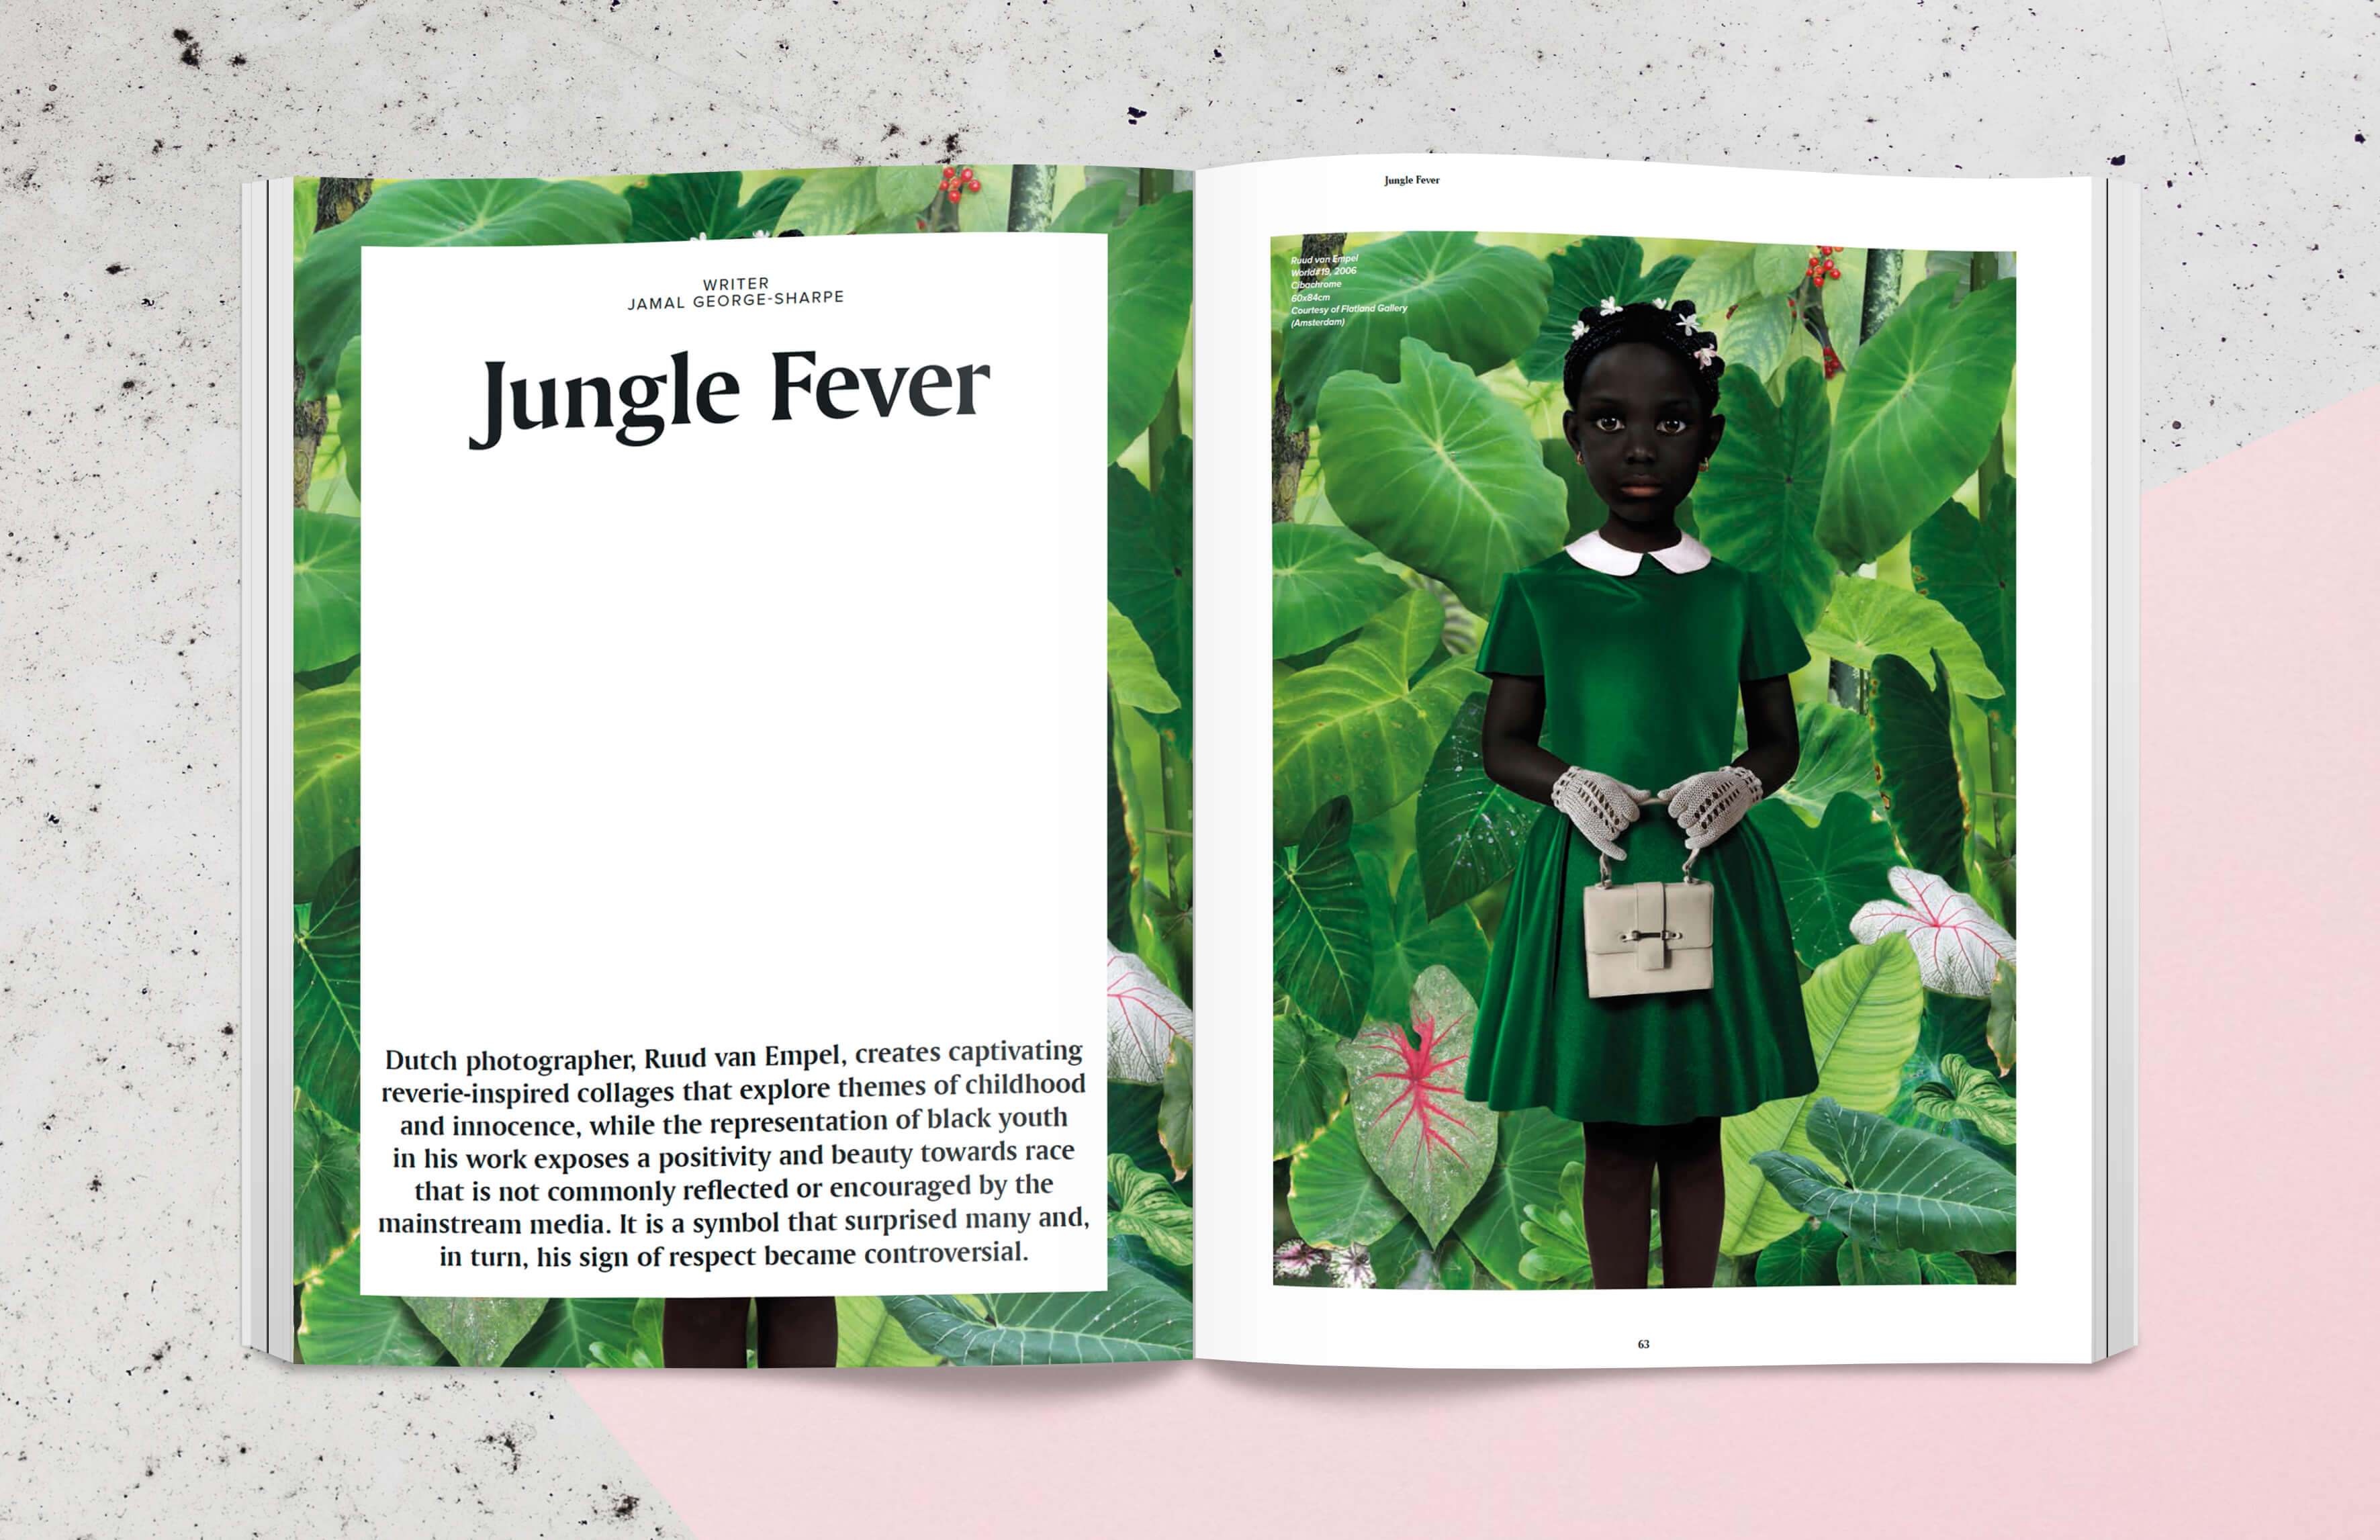 Magazine spread with collage work of artist Ruud van Empel